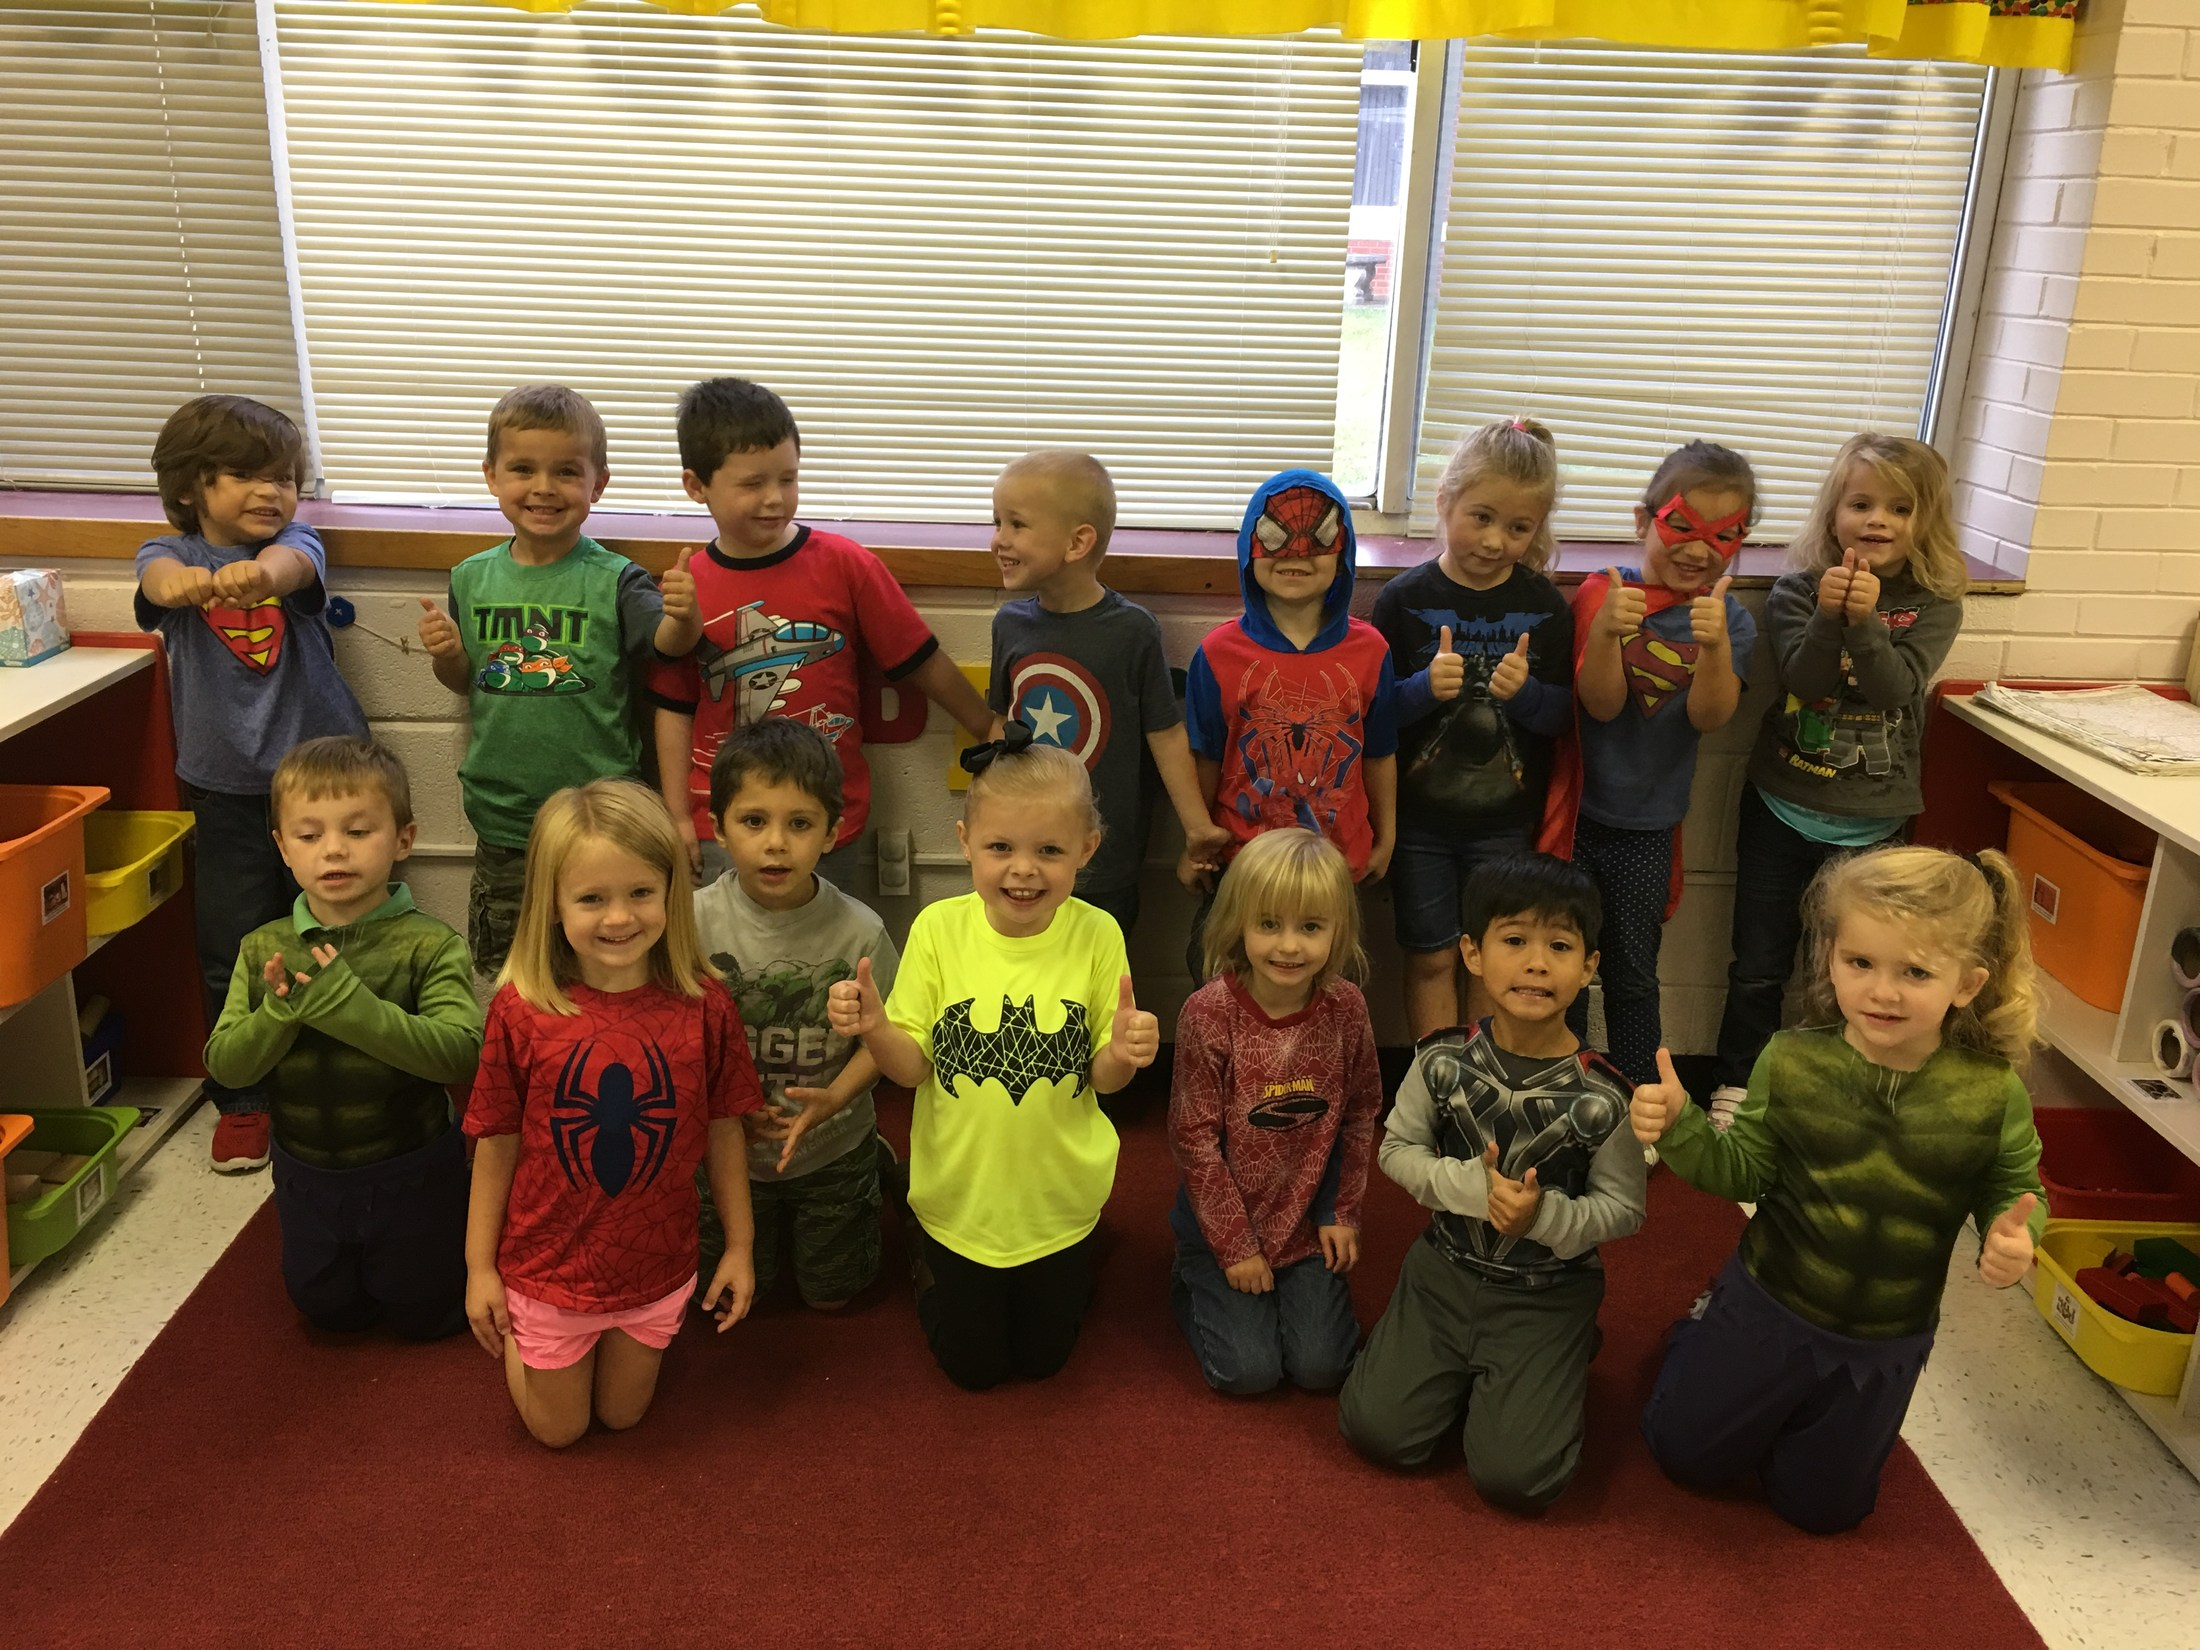 group picture of students dressed as superheroes